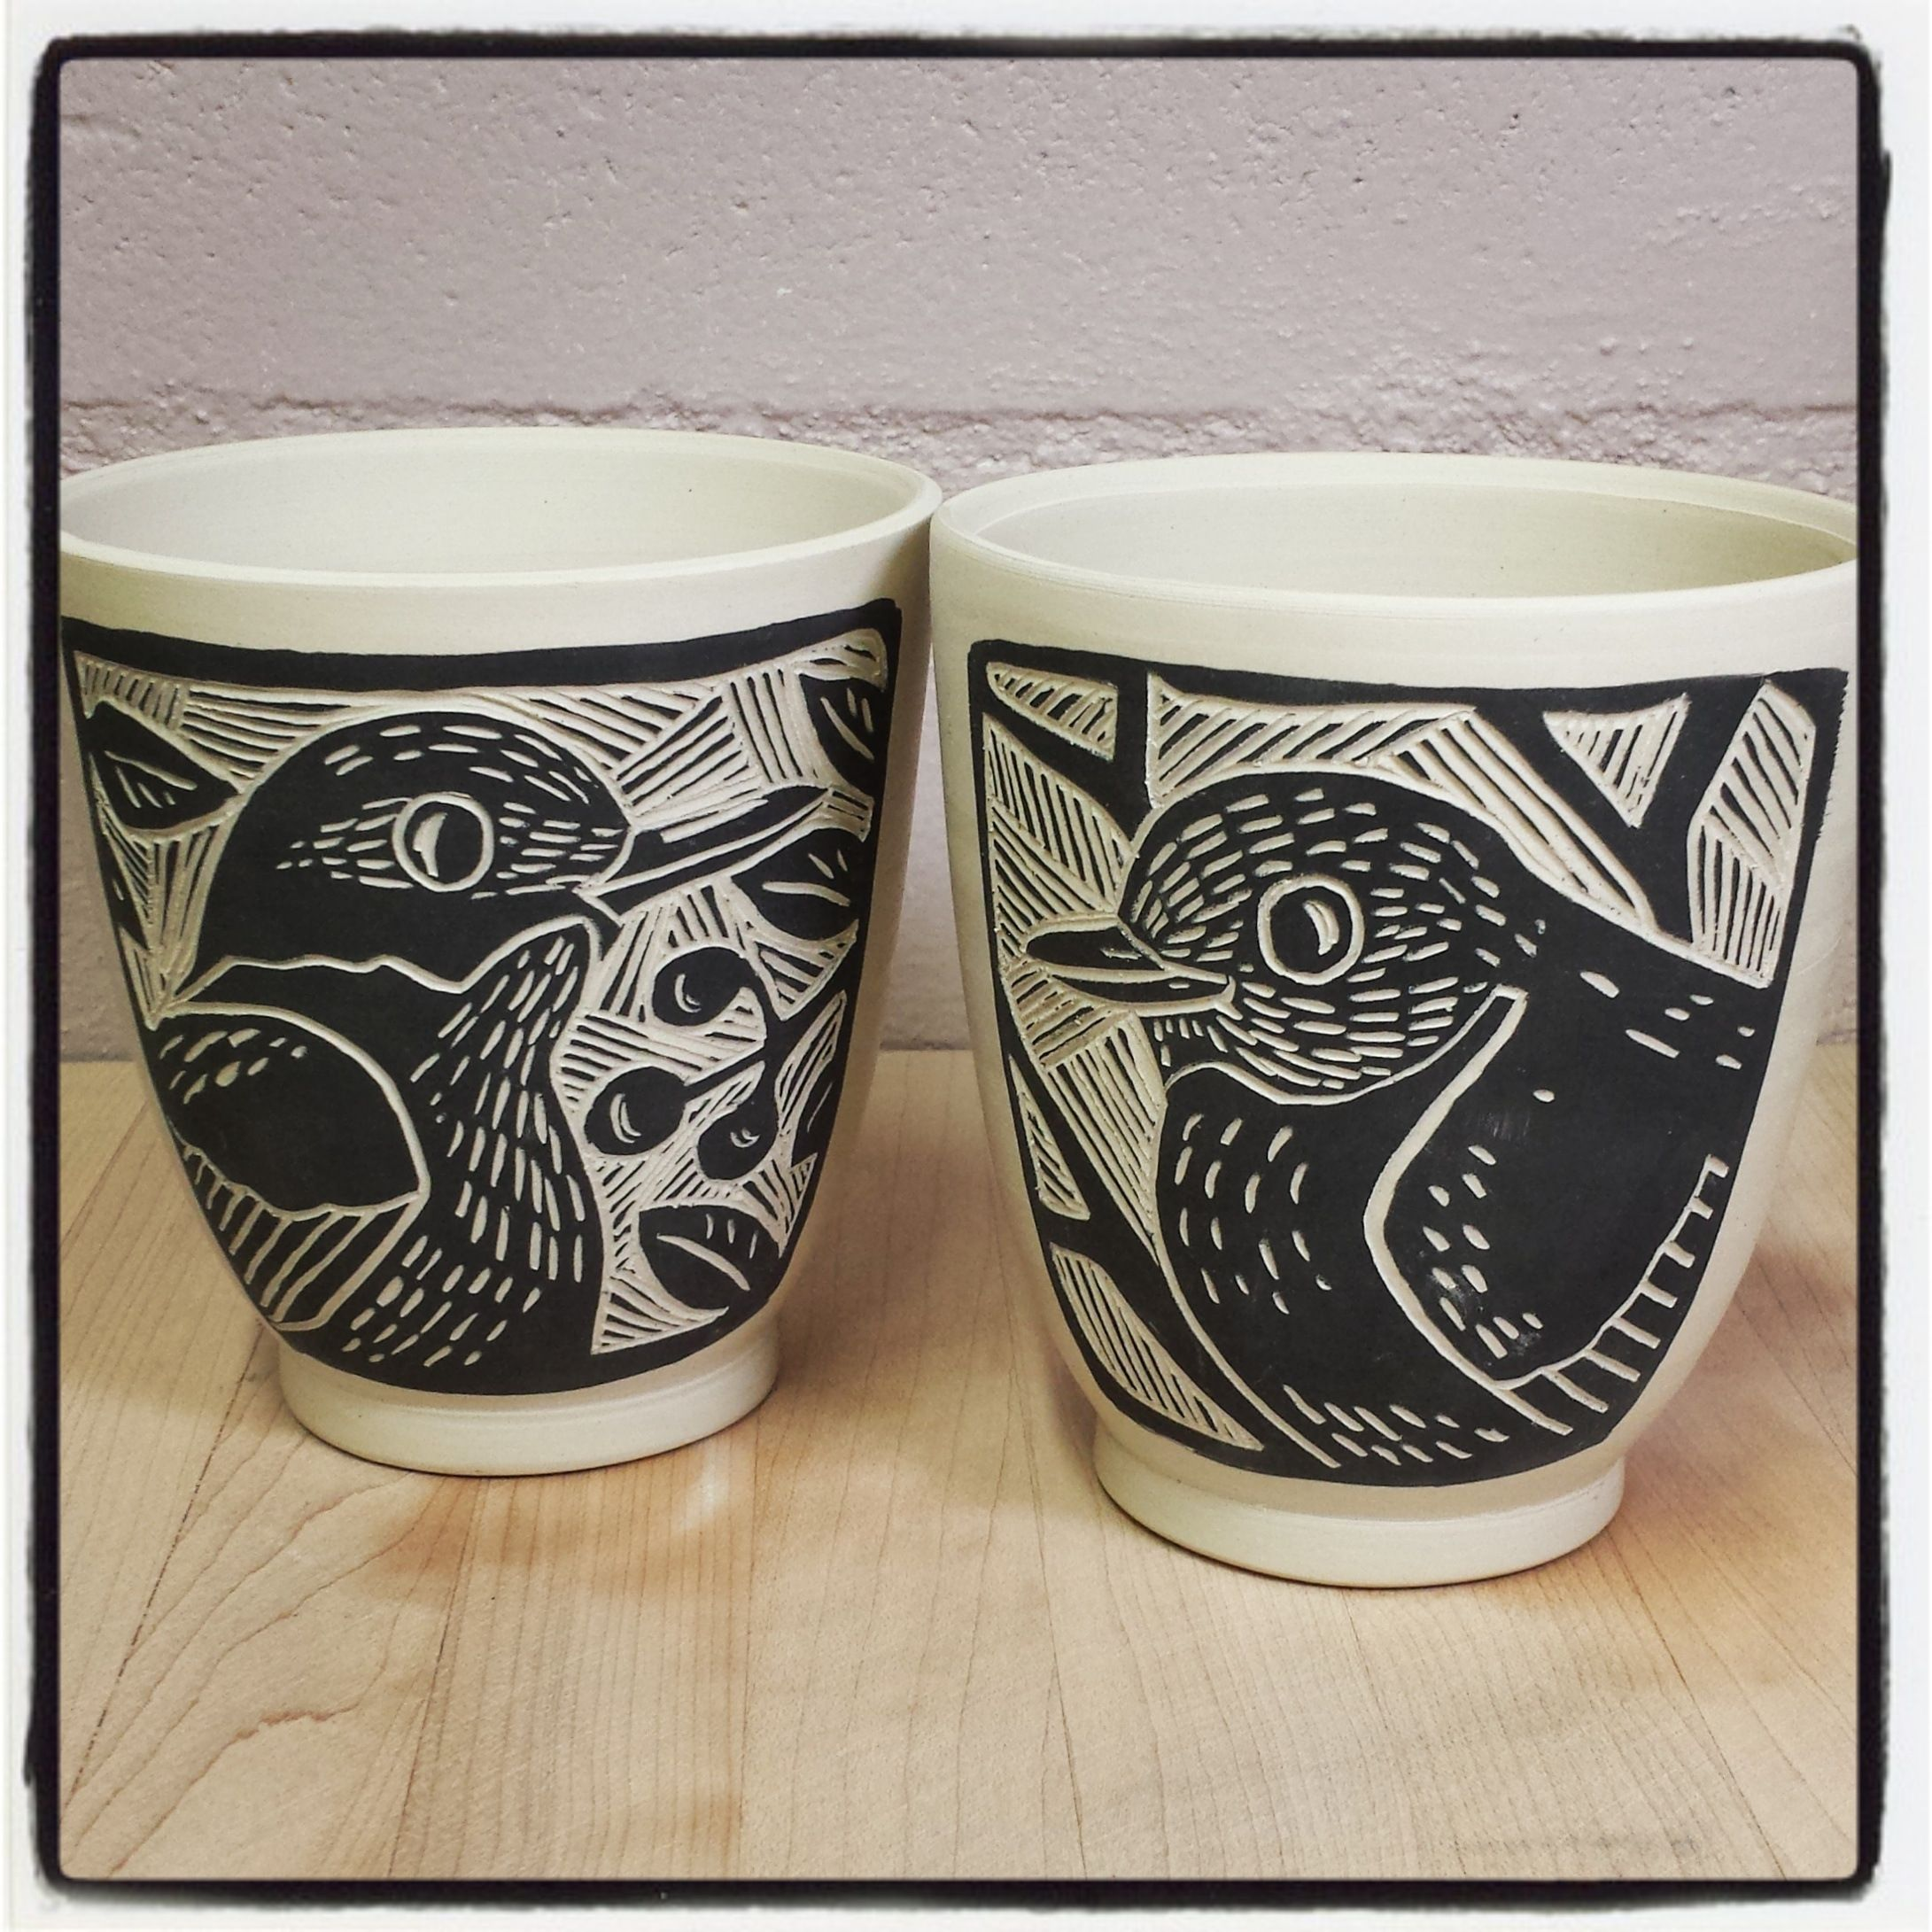 """Botanical Triad More Black""""  Sgraffito Porcelain 12″ tiles further 11 best Sgraffito designs images on Pinterest   Sgraffito  Ceramic moreover 559 best Sgraffito images on Pinterest   Ceramic pottery additionally sgraffito designs   Google Search   handmade pottery ex les moreover Ceramics in black and white as well  moreover 85 best Slip Sgraffito images on Pinterest   Ceramic pottery likewise  also 117 best Ceramics by Paula Focazio Art   Design images on additionally 65 best Sgraffito Designs images on Pinterest   Pottery ideas in addition What is Sgraffito   Pottery Technique and Tools. on design for sgraffito"""